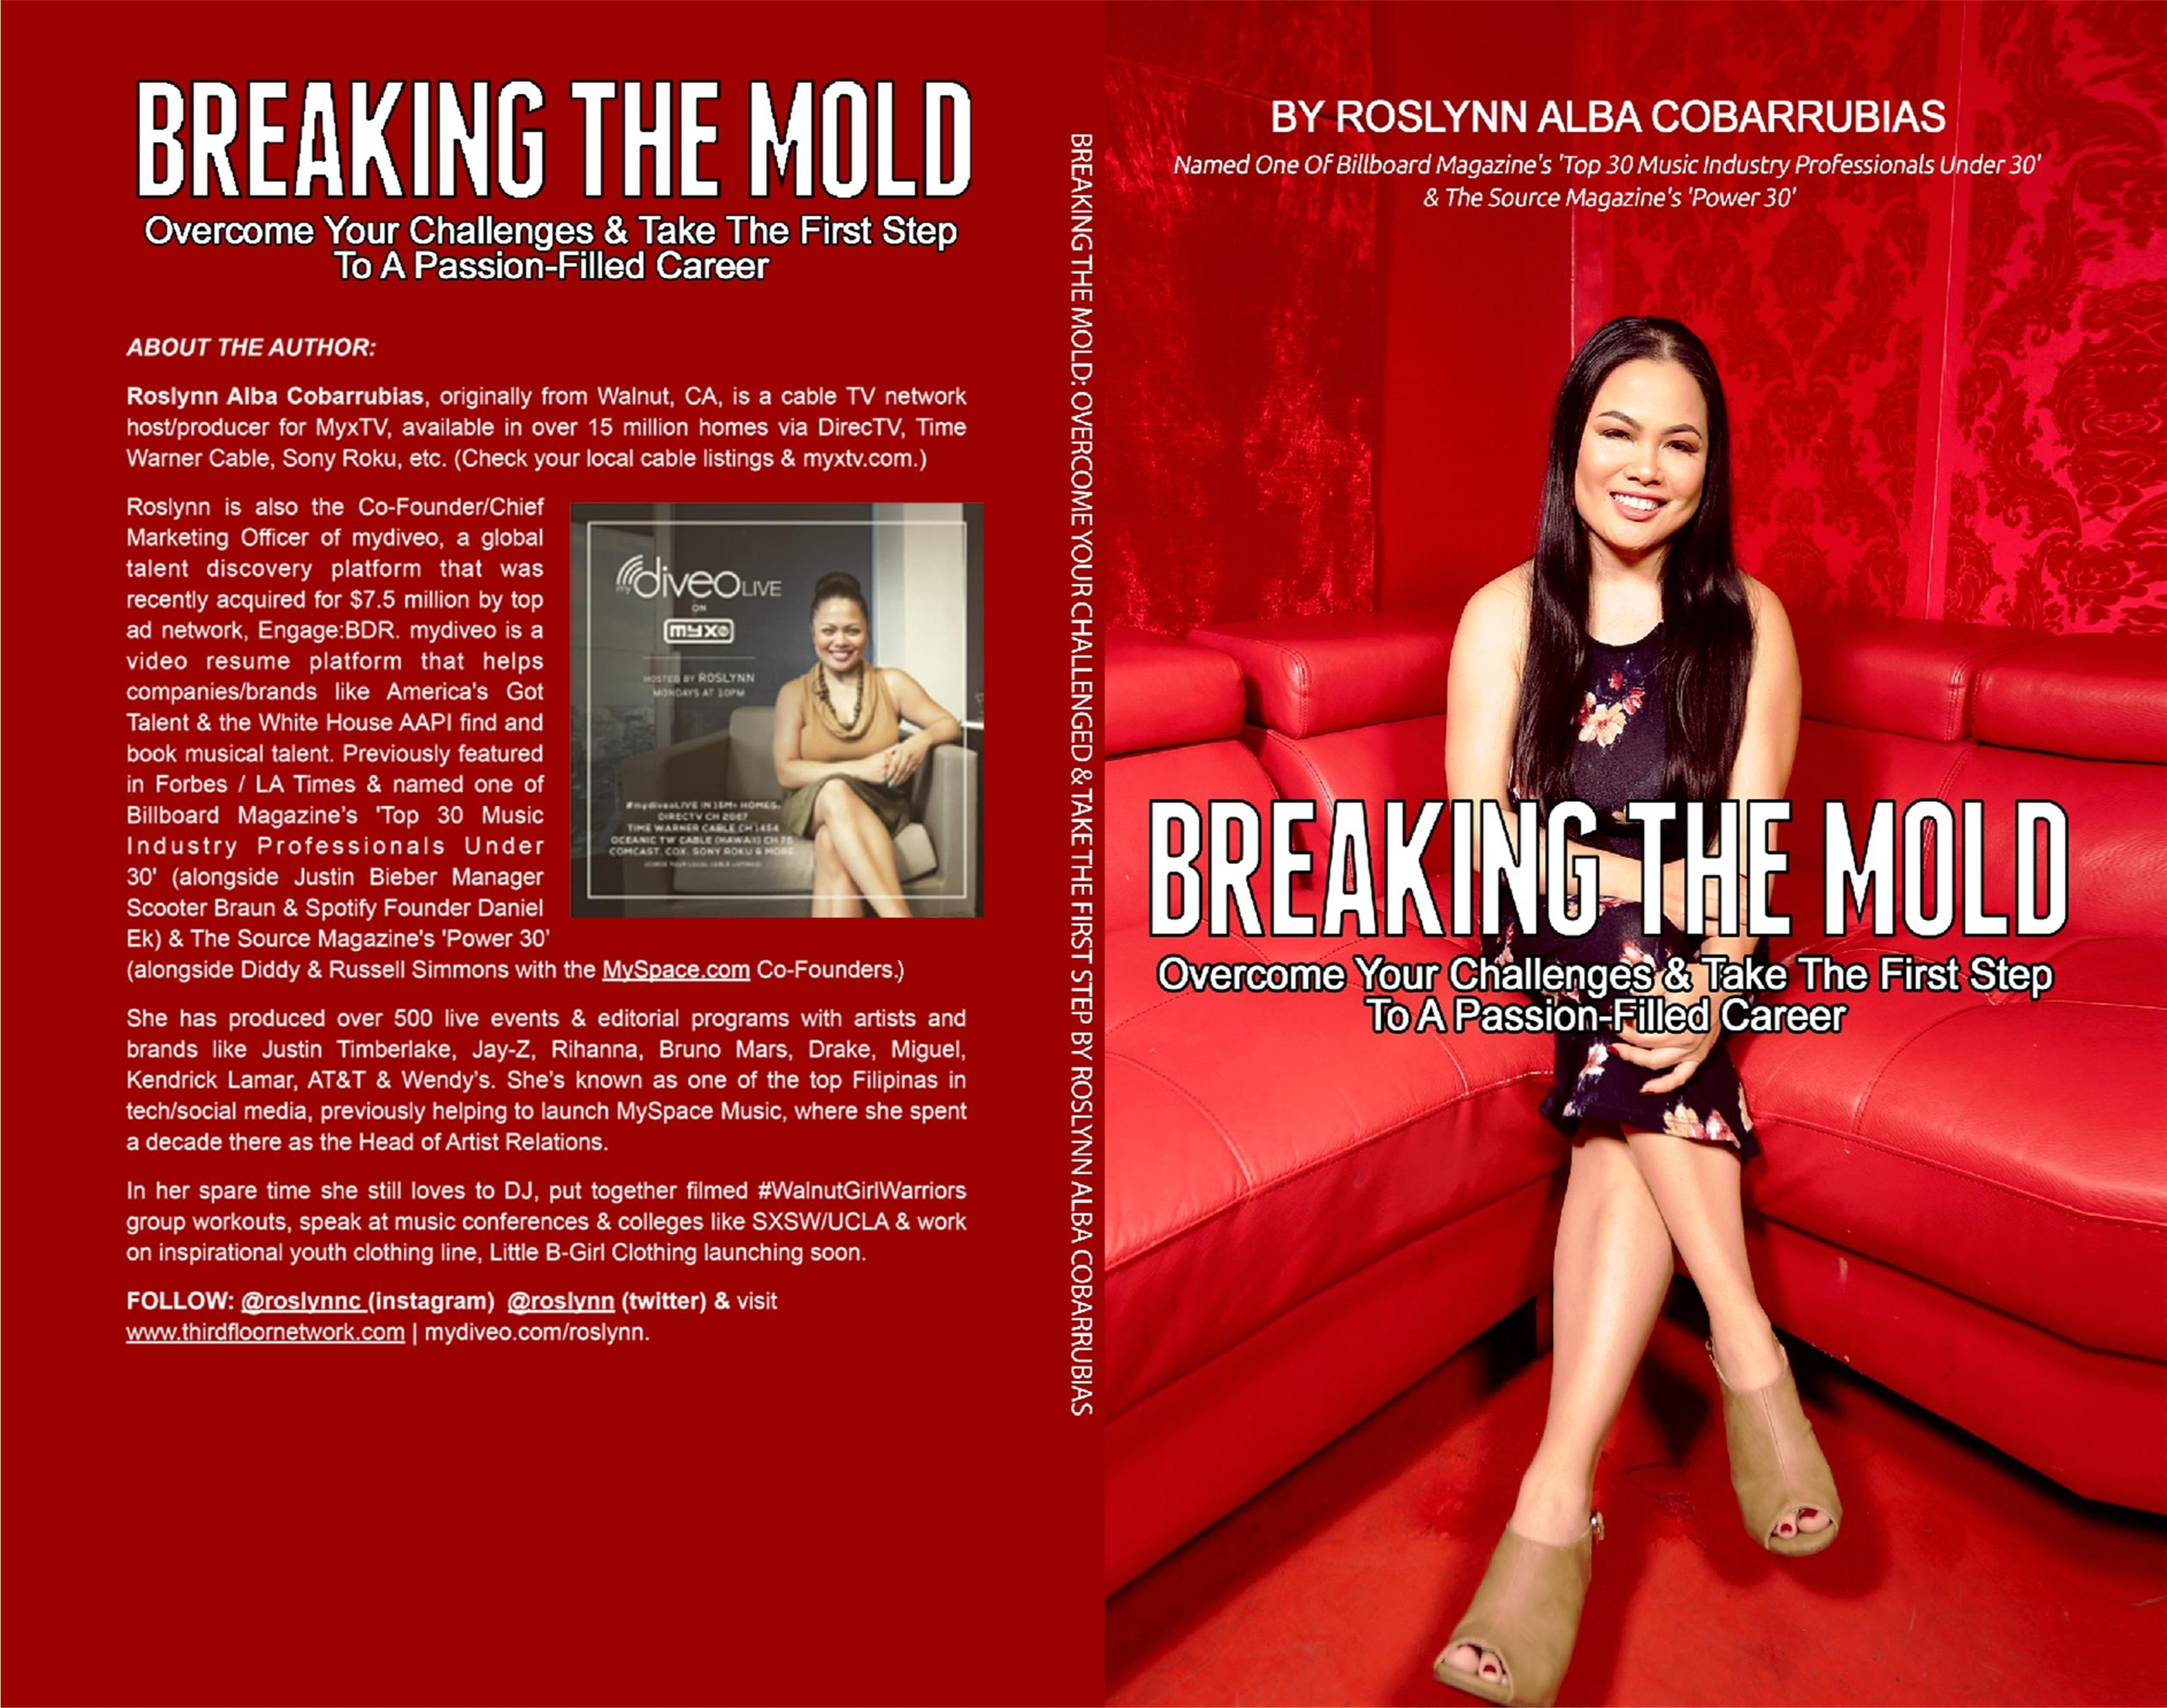 Breaking The Mold: Overcome Your Challenges & Take The First Step To A Passion-Filled Career cover image